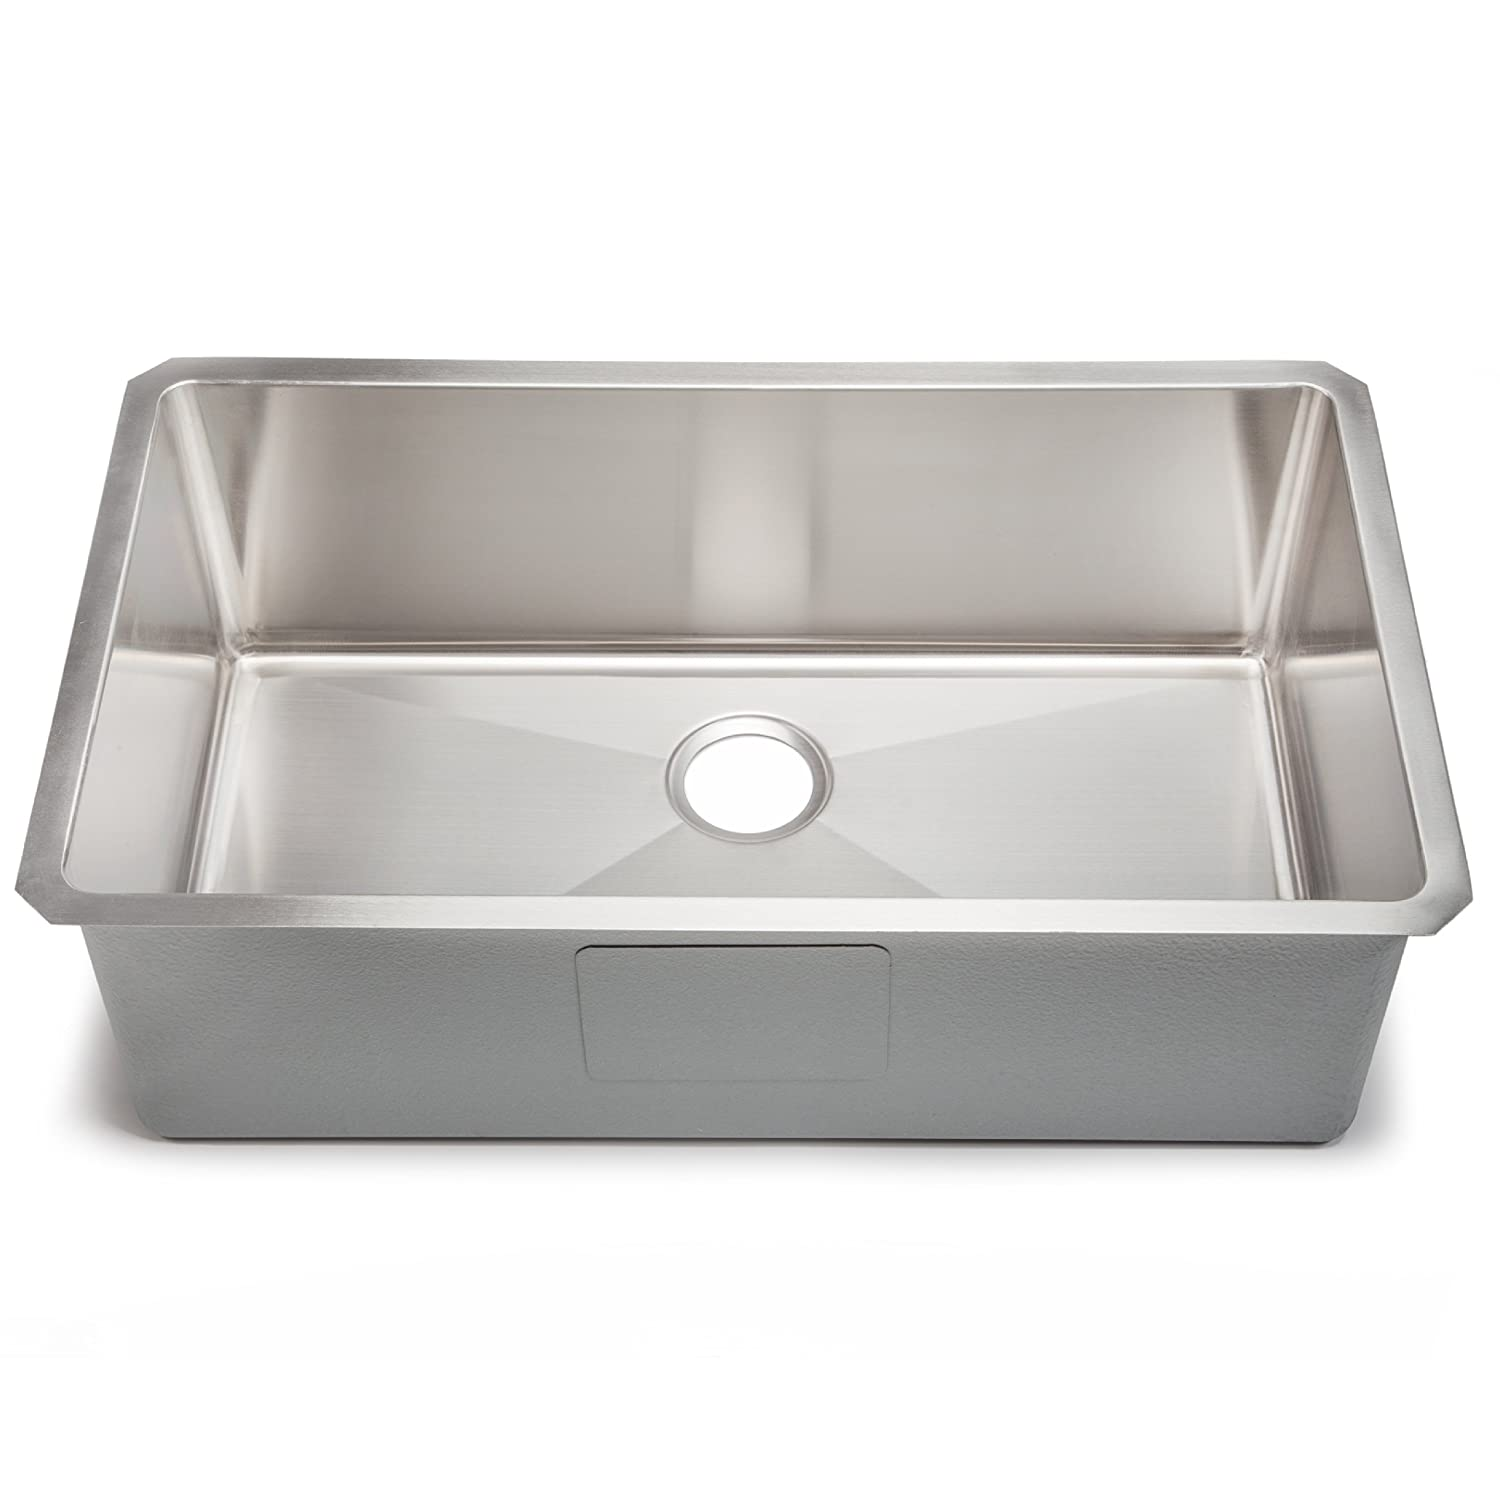 hahn sink reviews